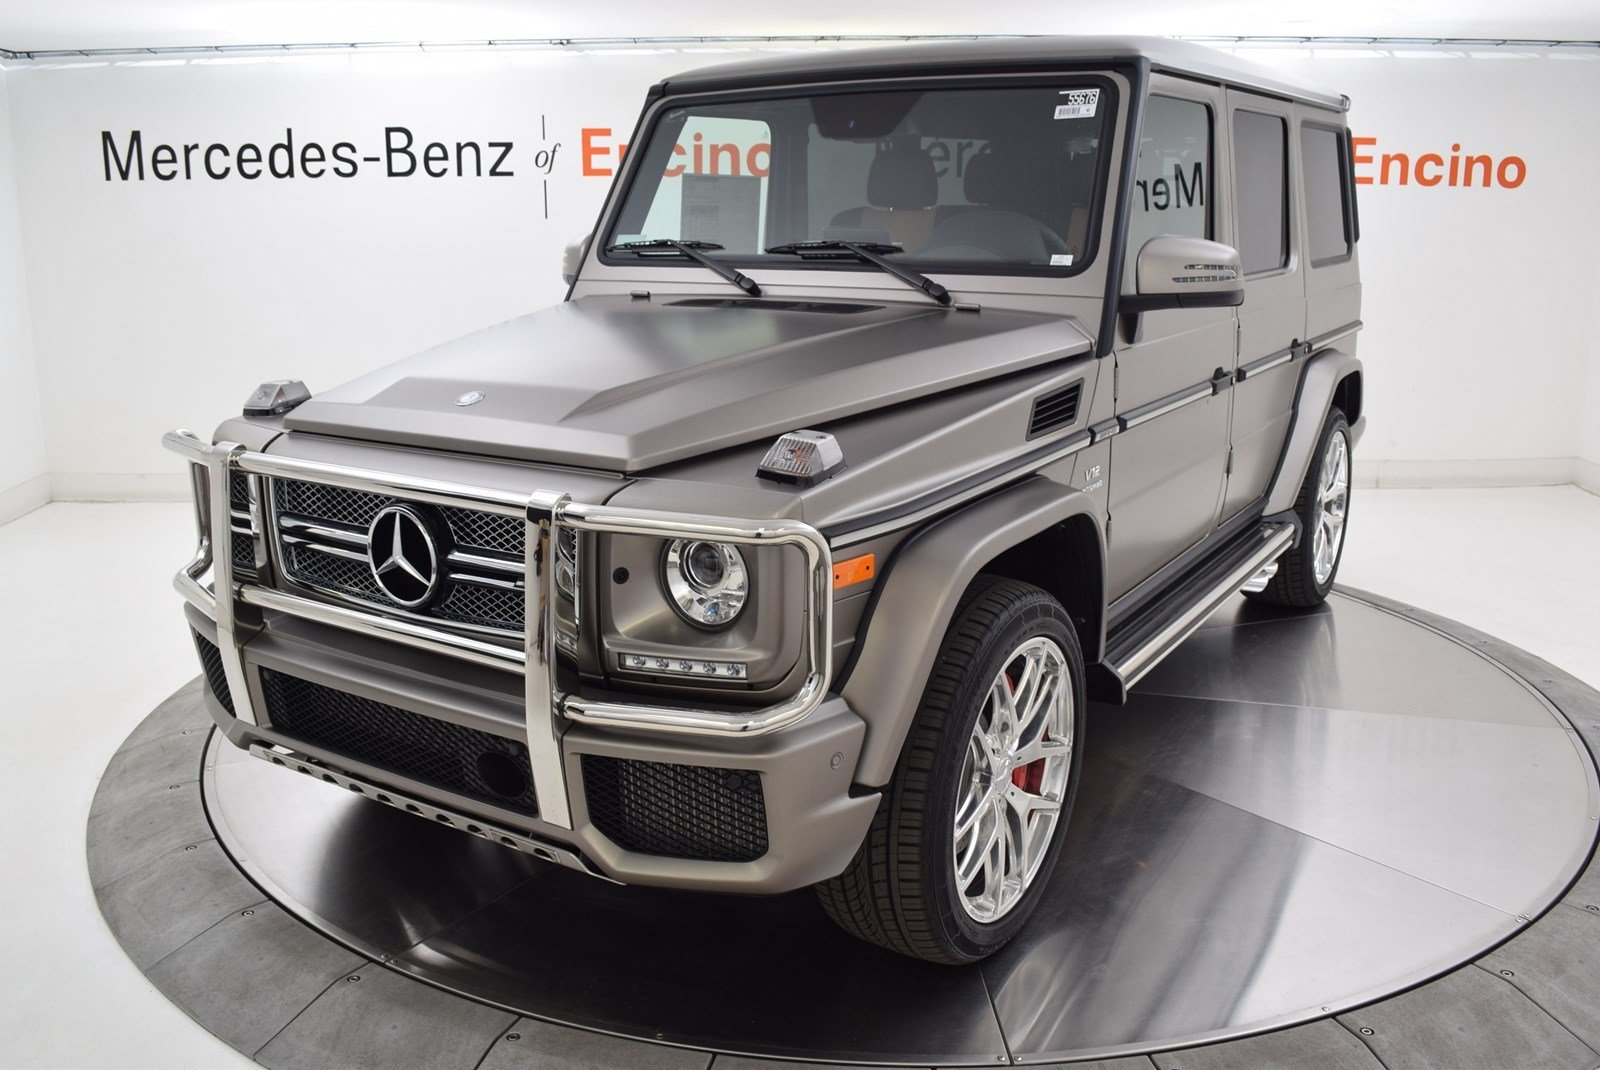 New 2017 mercedes benz g class g 65 amg suv suv in encino for Mercedes benz financial payment address